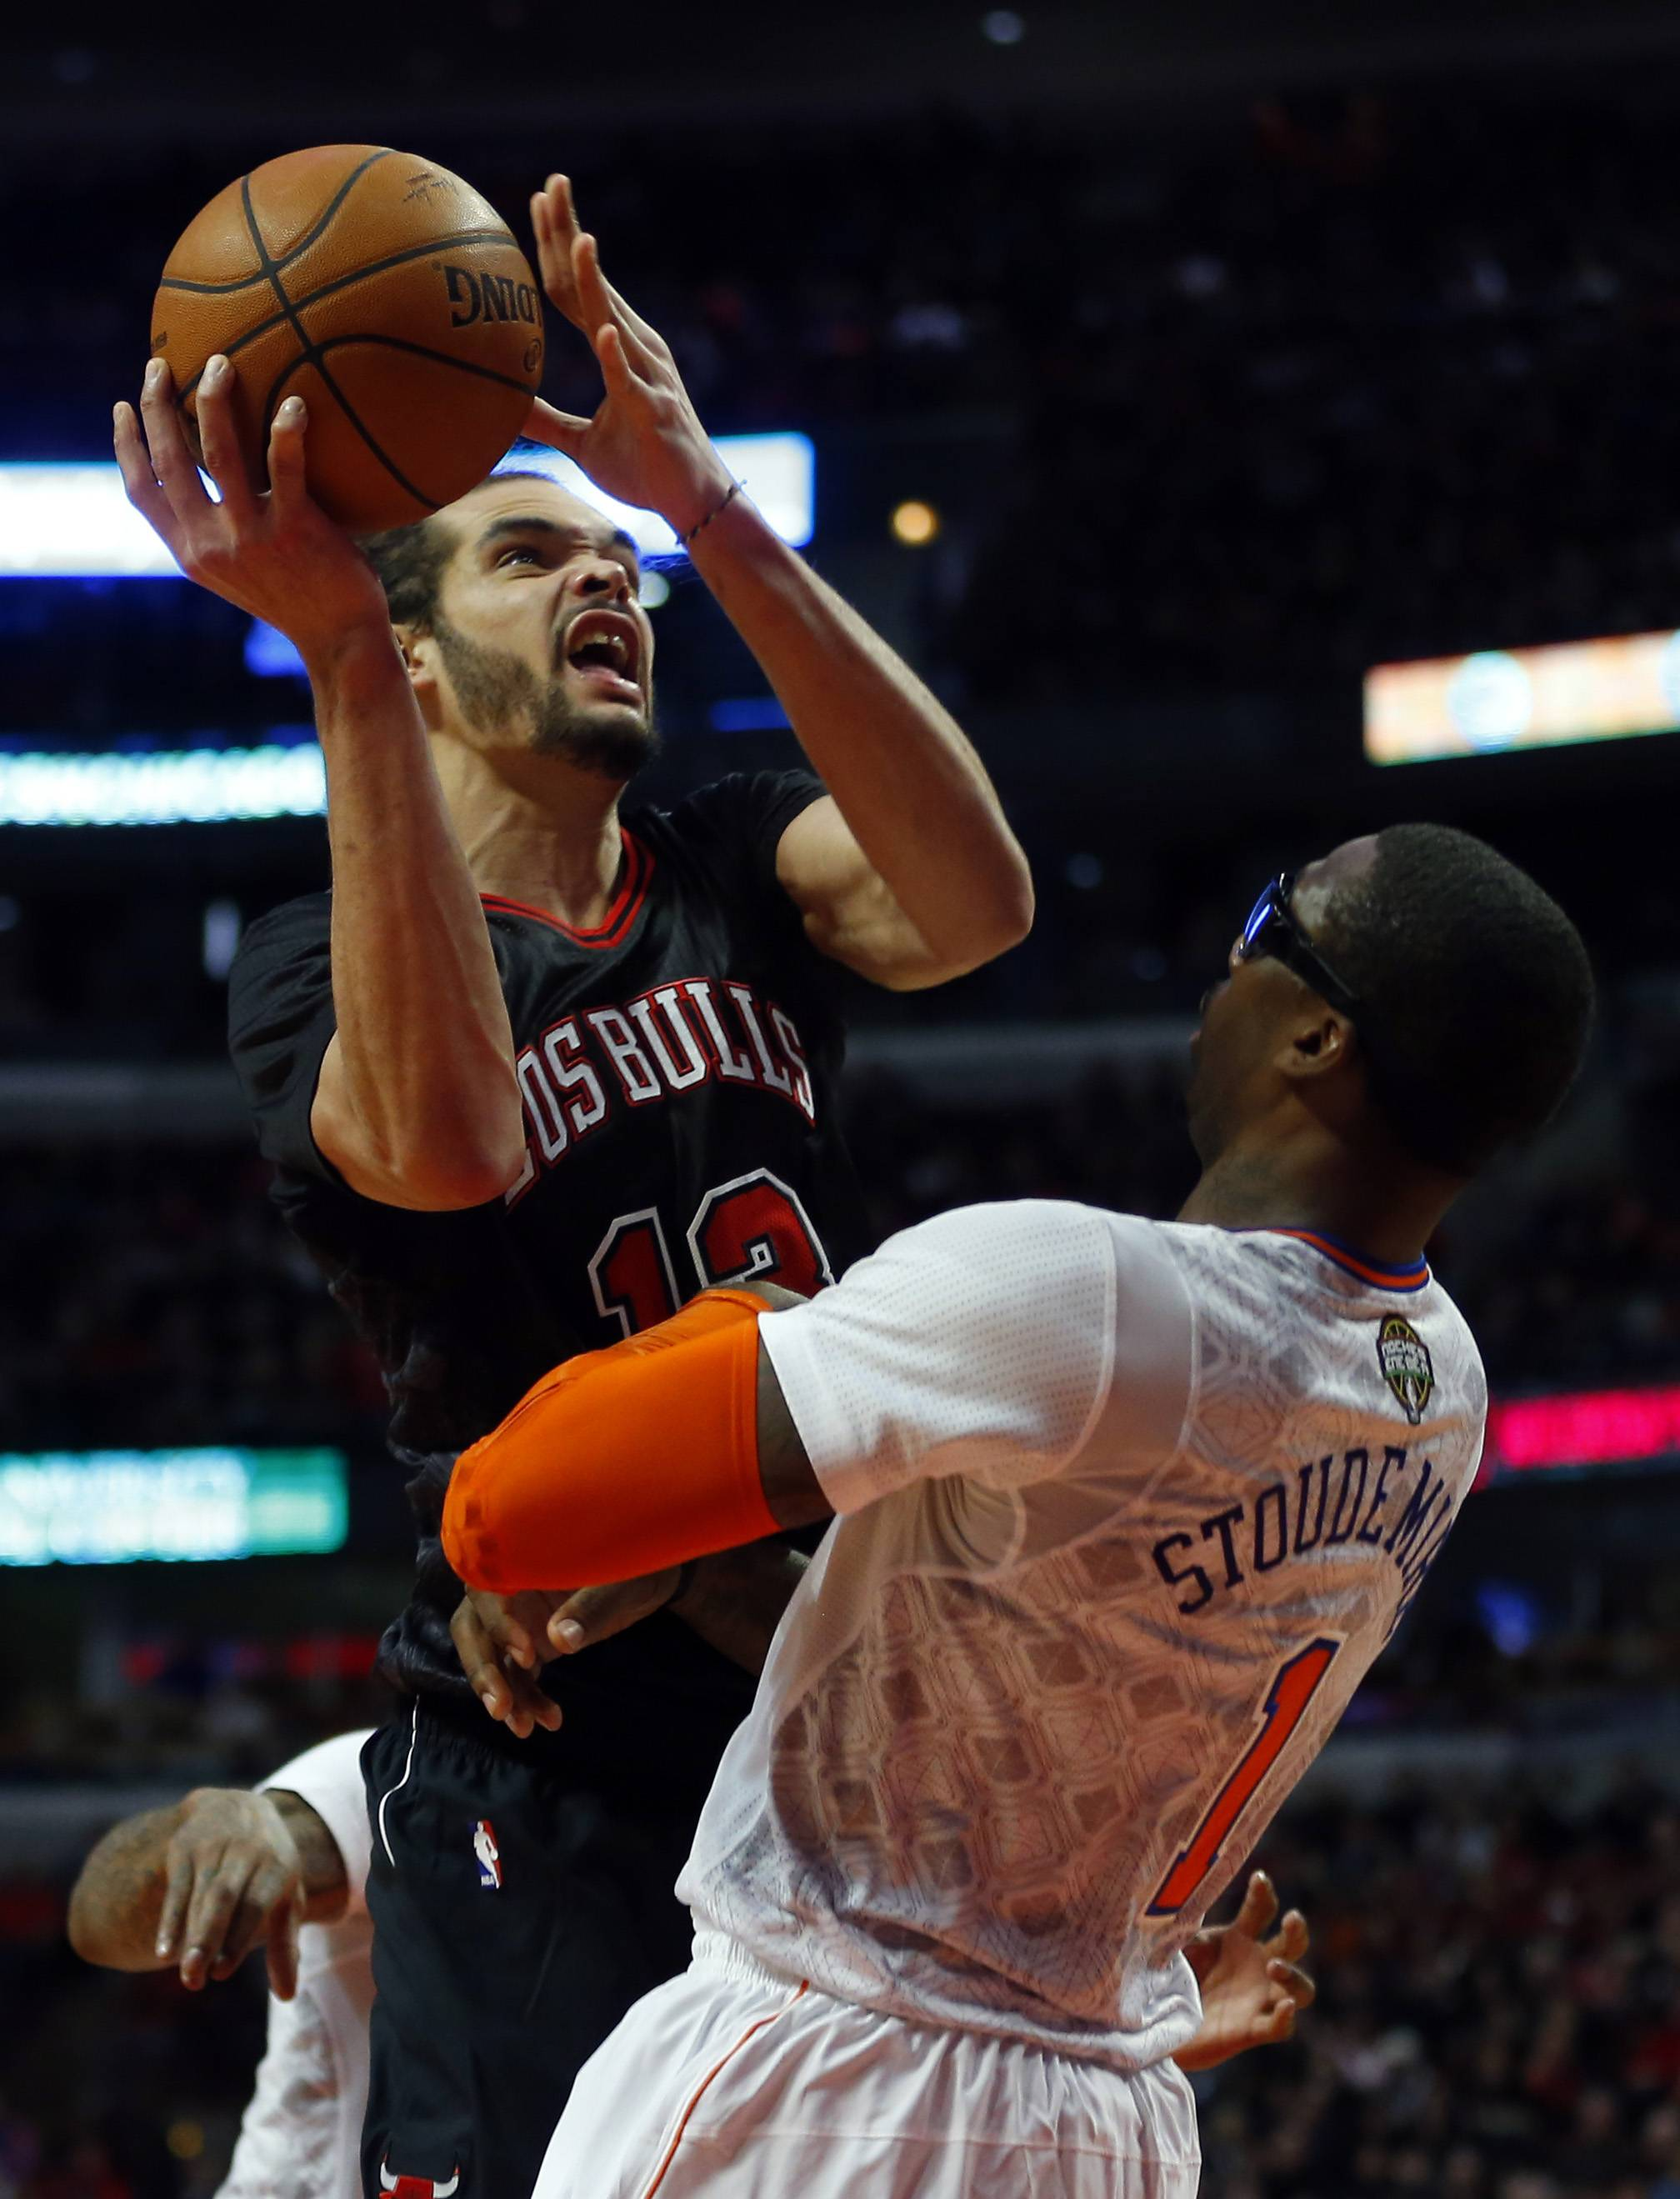 The Bulls' Joakim Noah recorded his fifth career triple-double, setting a franchise record for assists by a center with 14 and adding 13 points and 12 rebounds. The Bulls pounded the Knicks 109-90 at the United Center on Sunday.